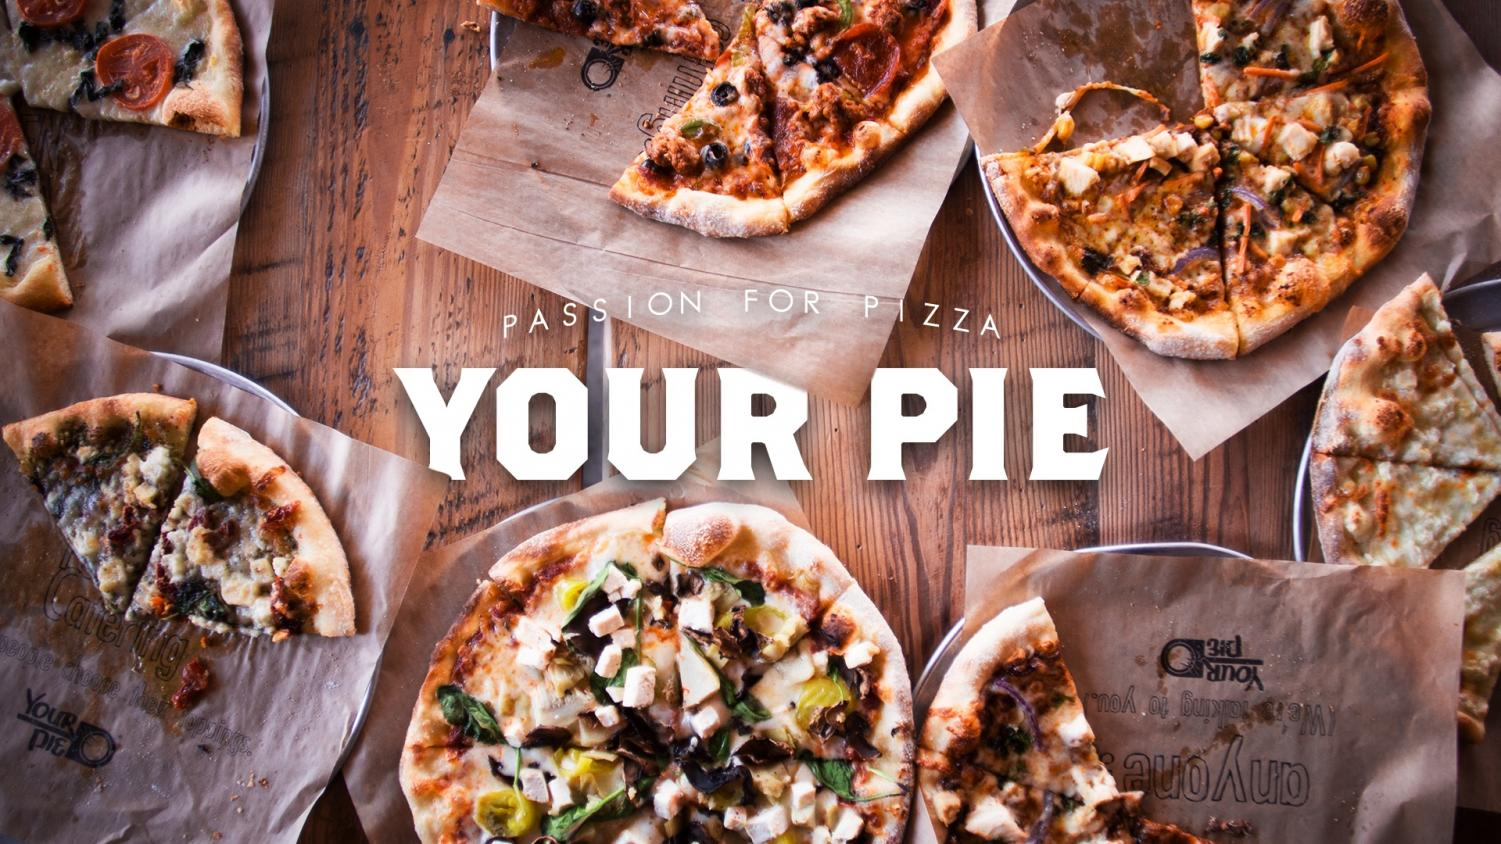 Your Pie holds a trivia night weekly on Tuesdays. Photo Credit: Google